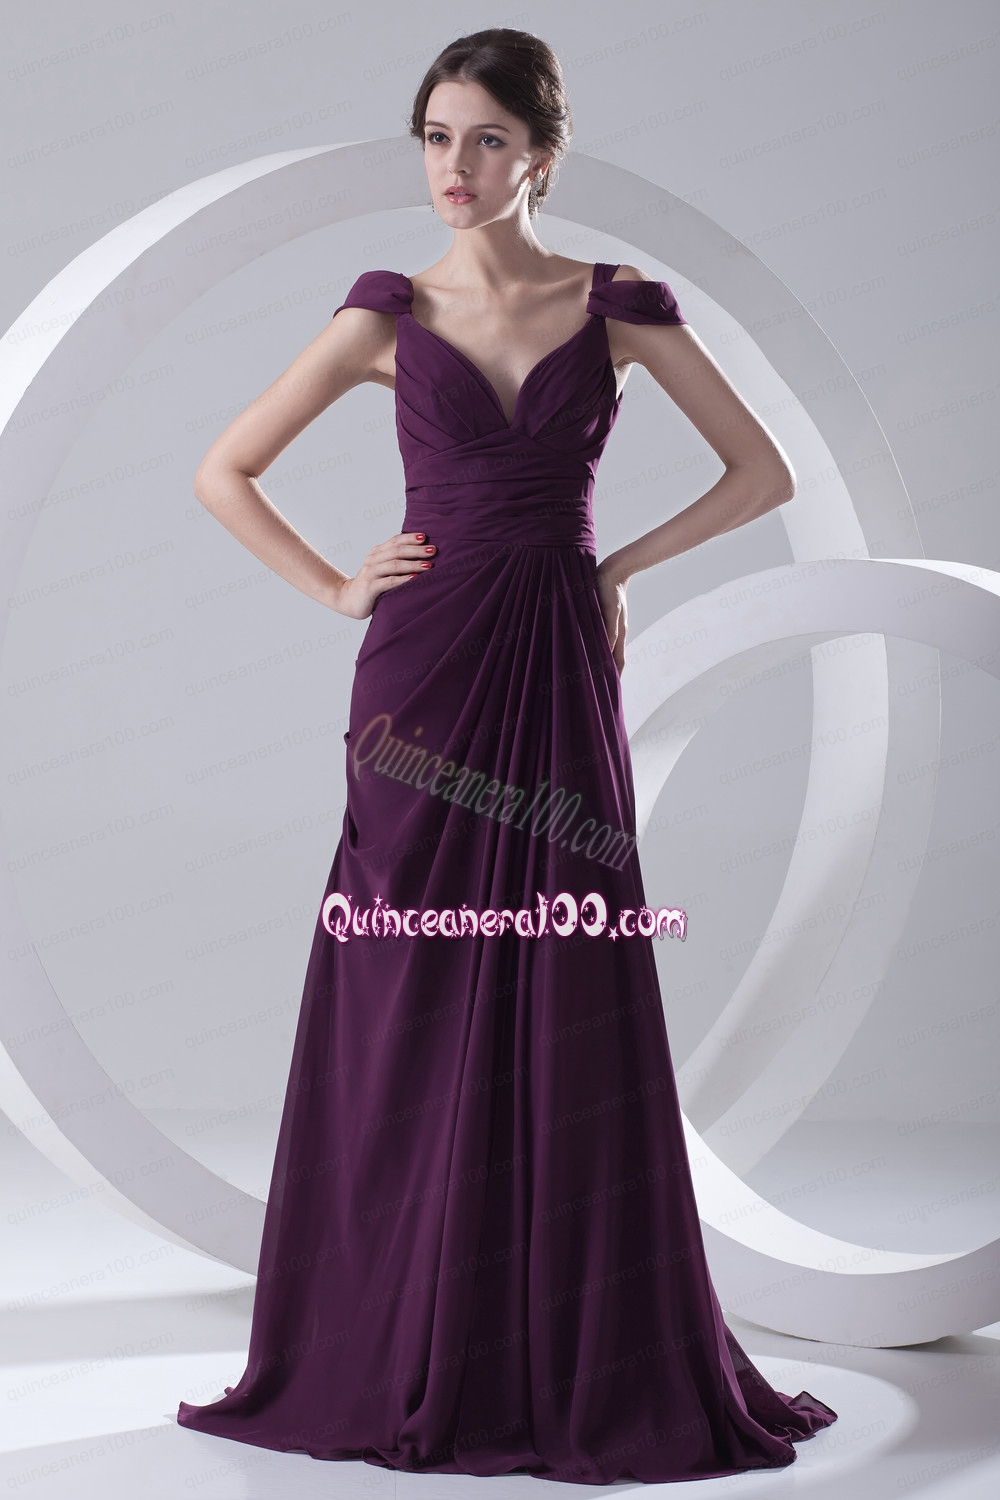 The dress empire - Empire Purple Ruching Straps Cap Sleeves Mother Of The Dress Triumph